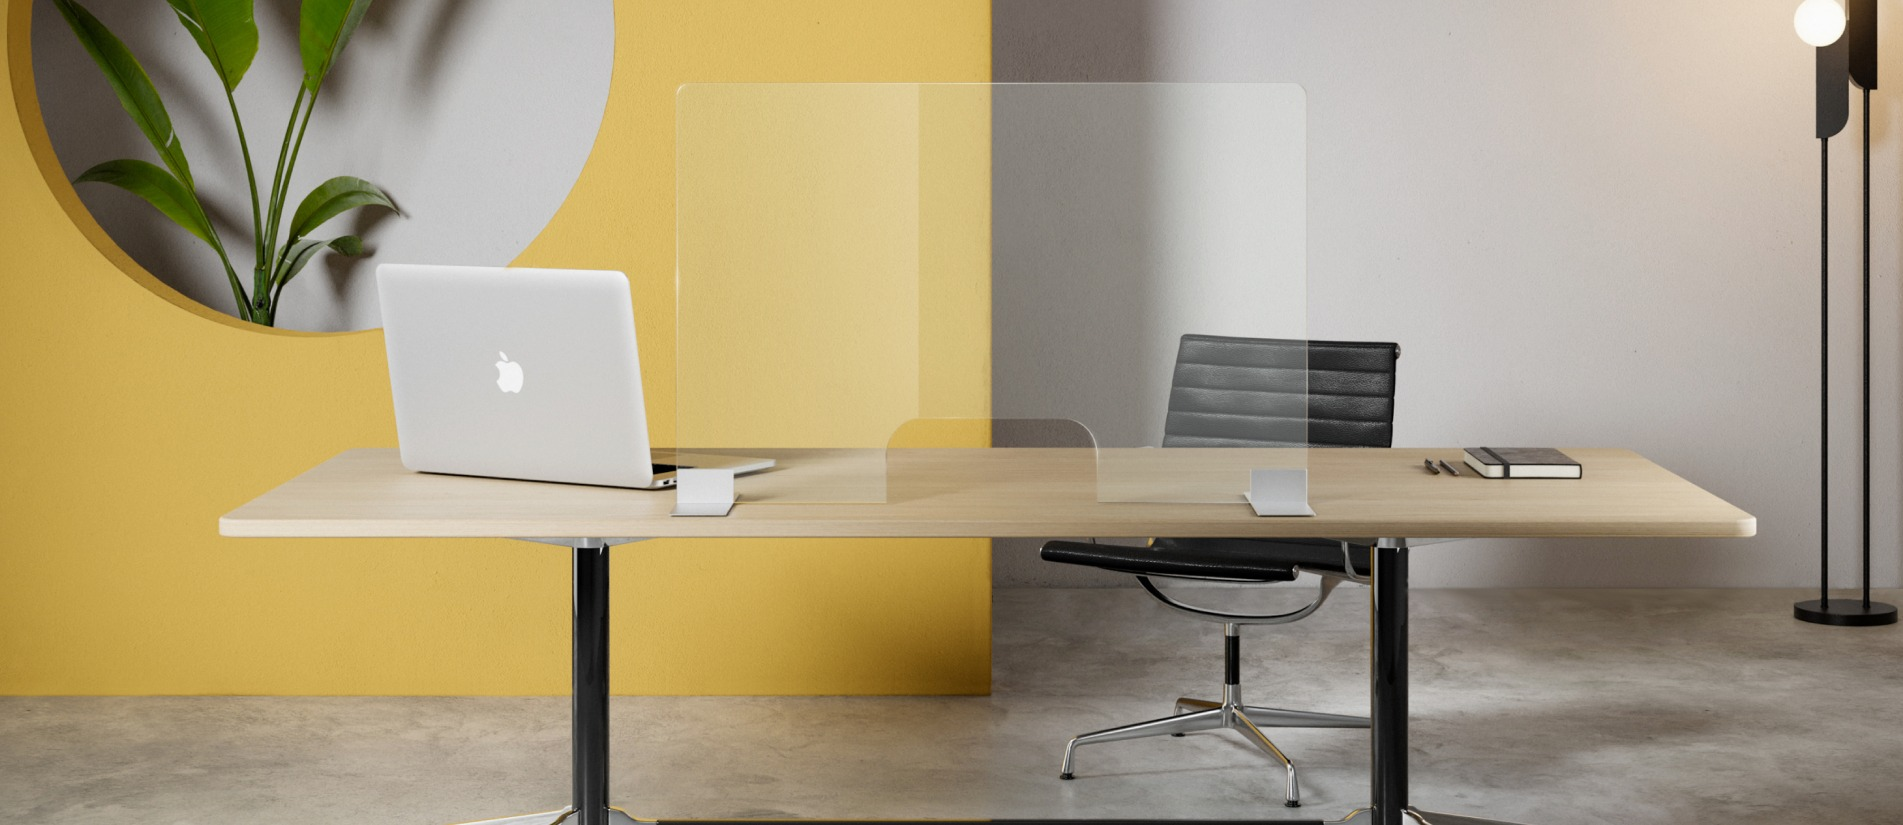 Free standing glass panel desk divider in an bright yellow colored office